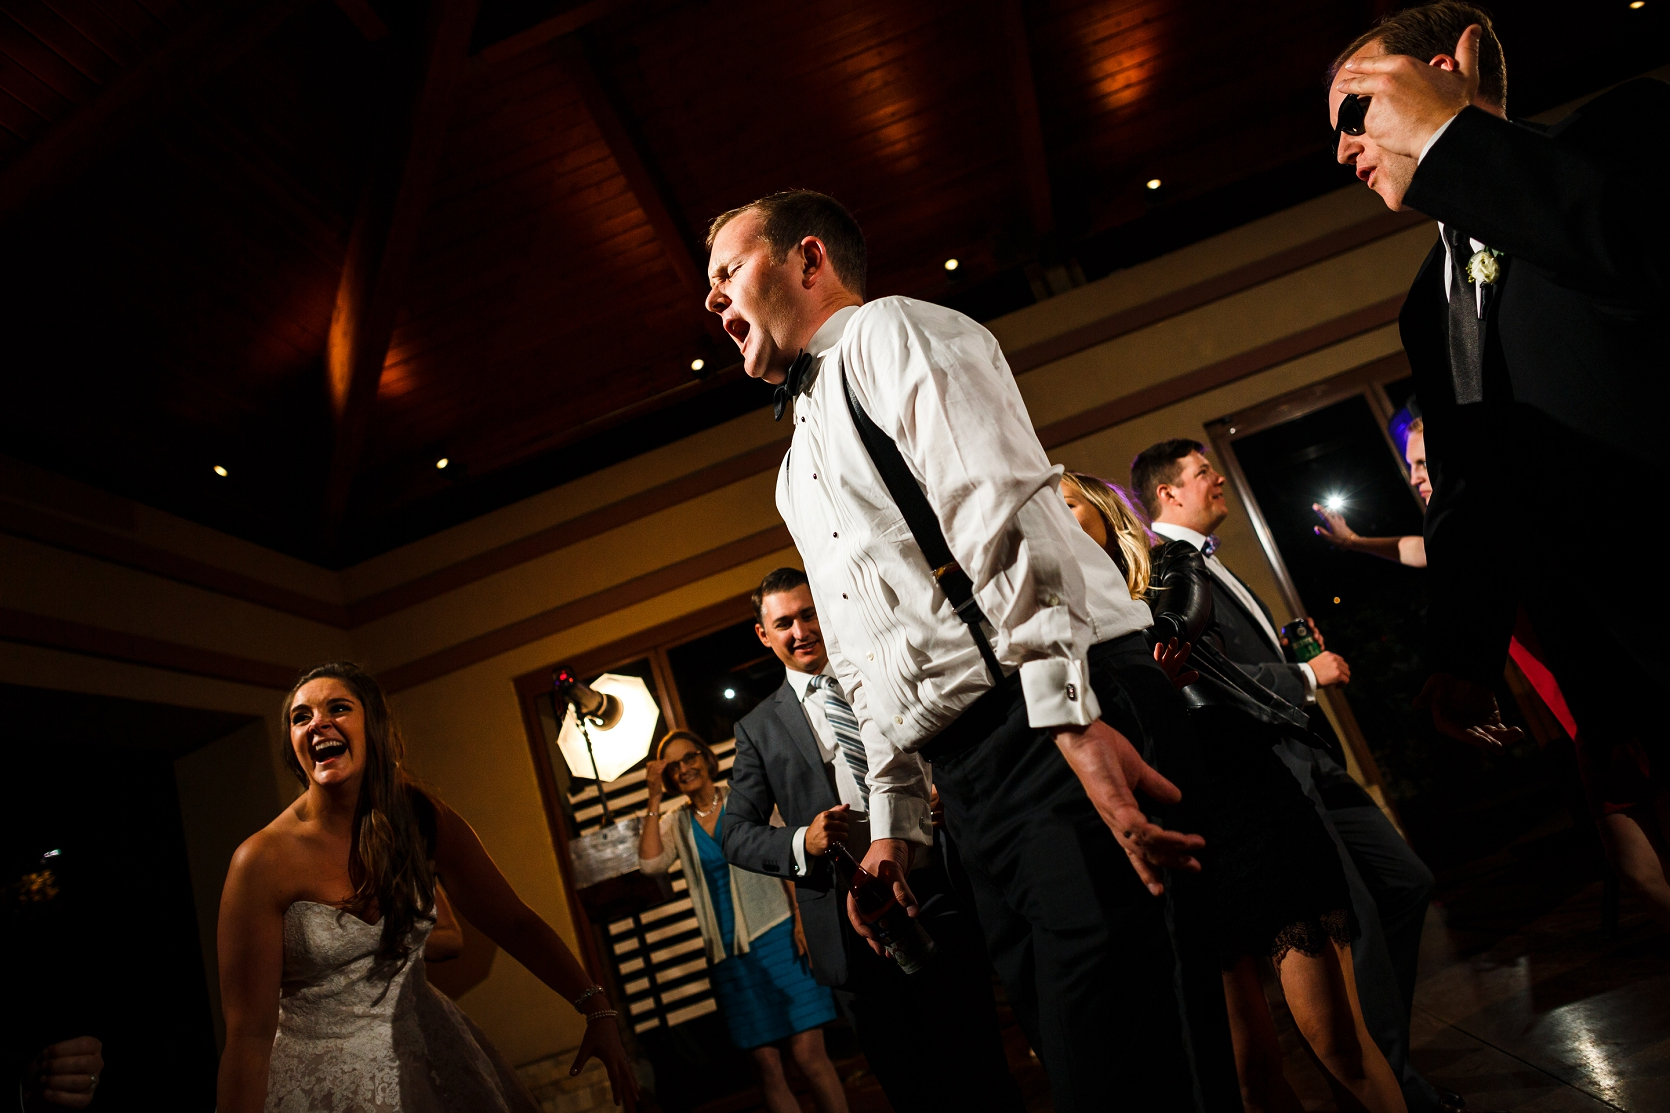 Omni_Interlocken_Hotel_Wedding_0042